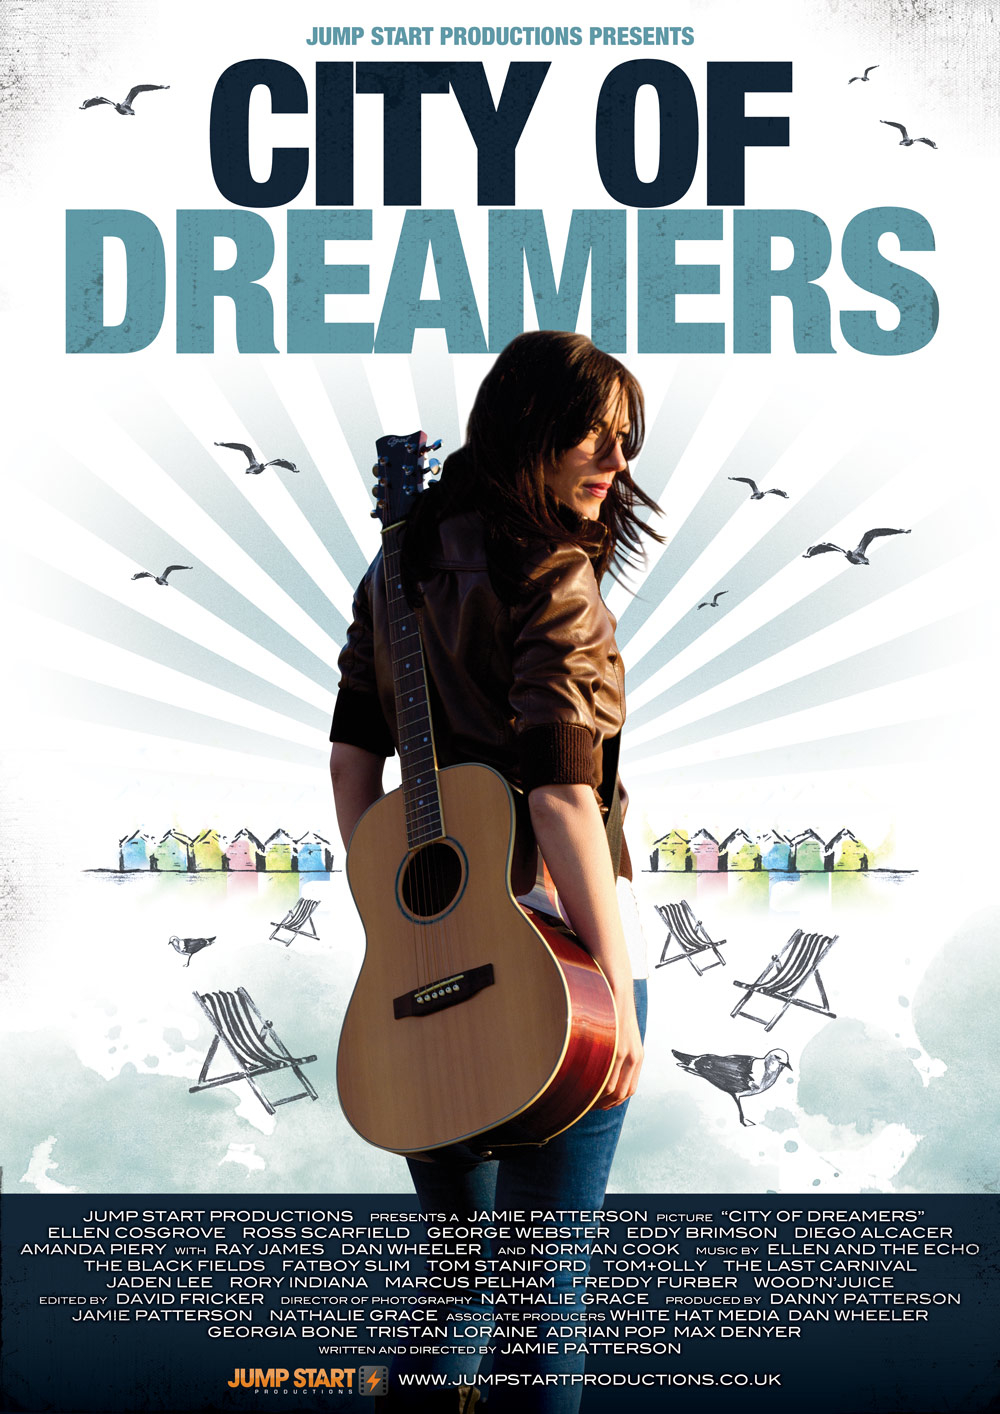 City-of-Dreamers-Poster.jpg